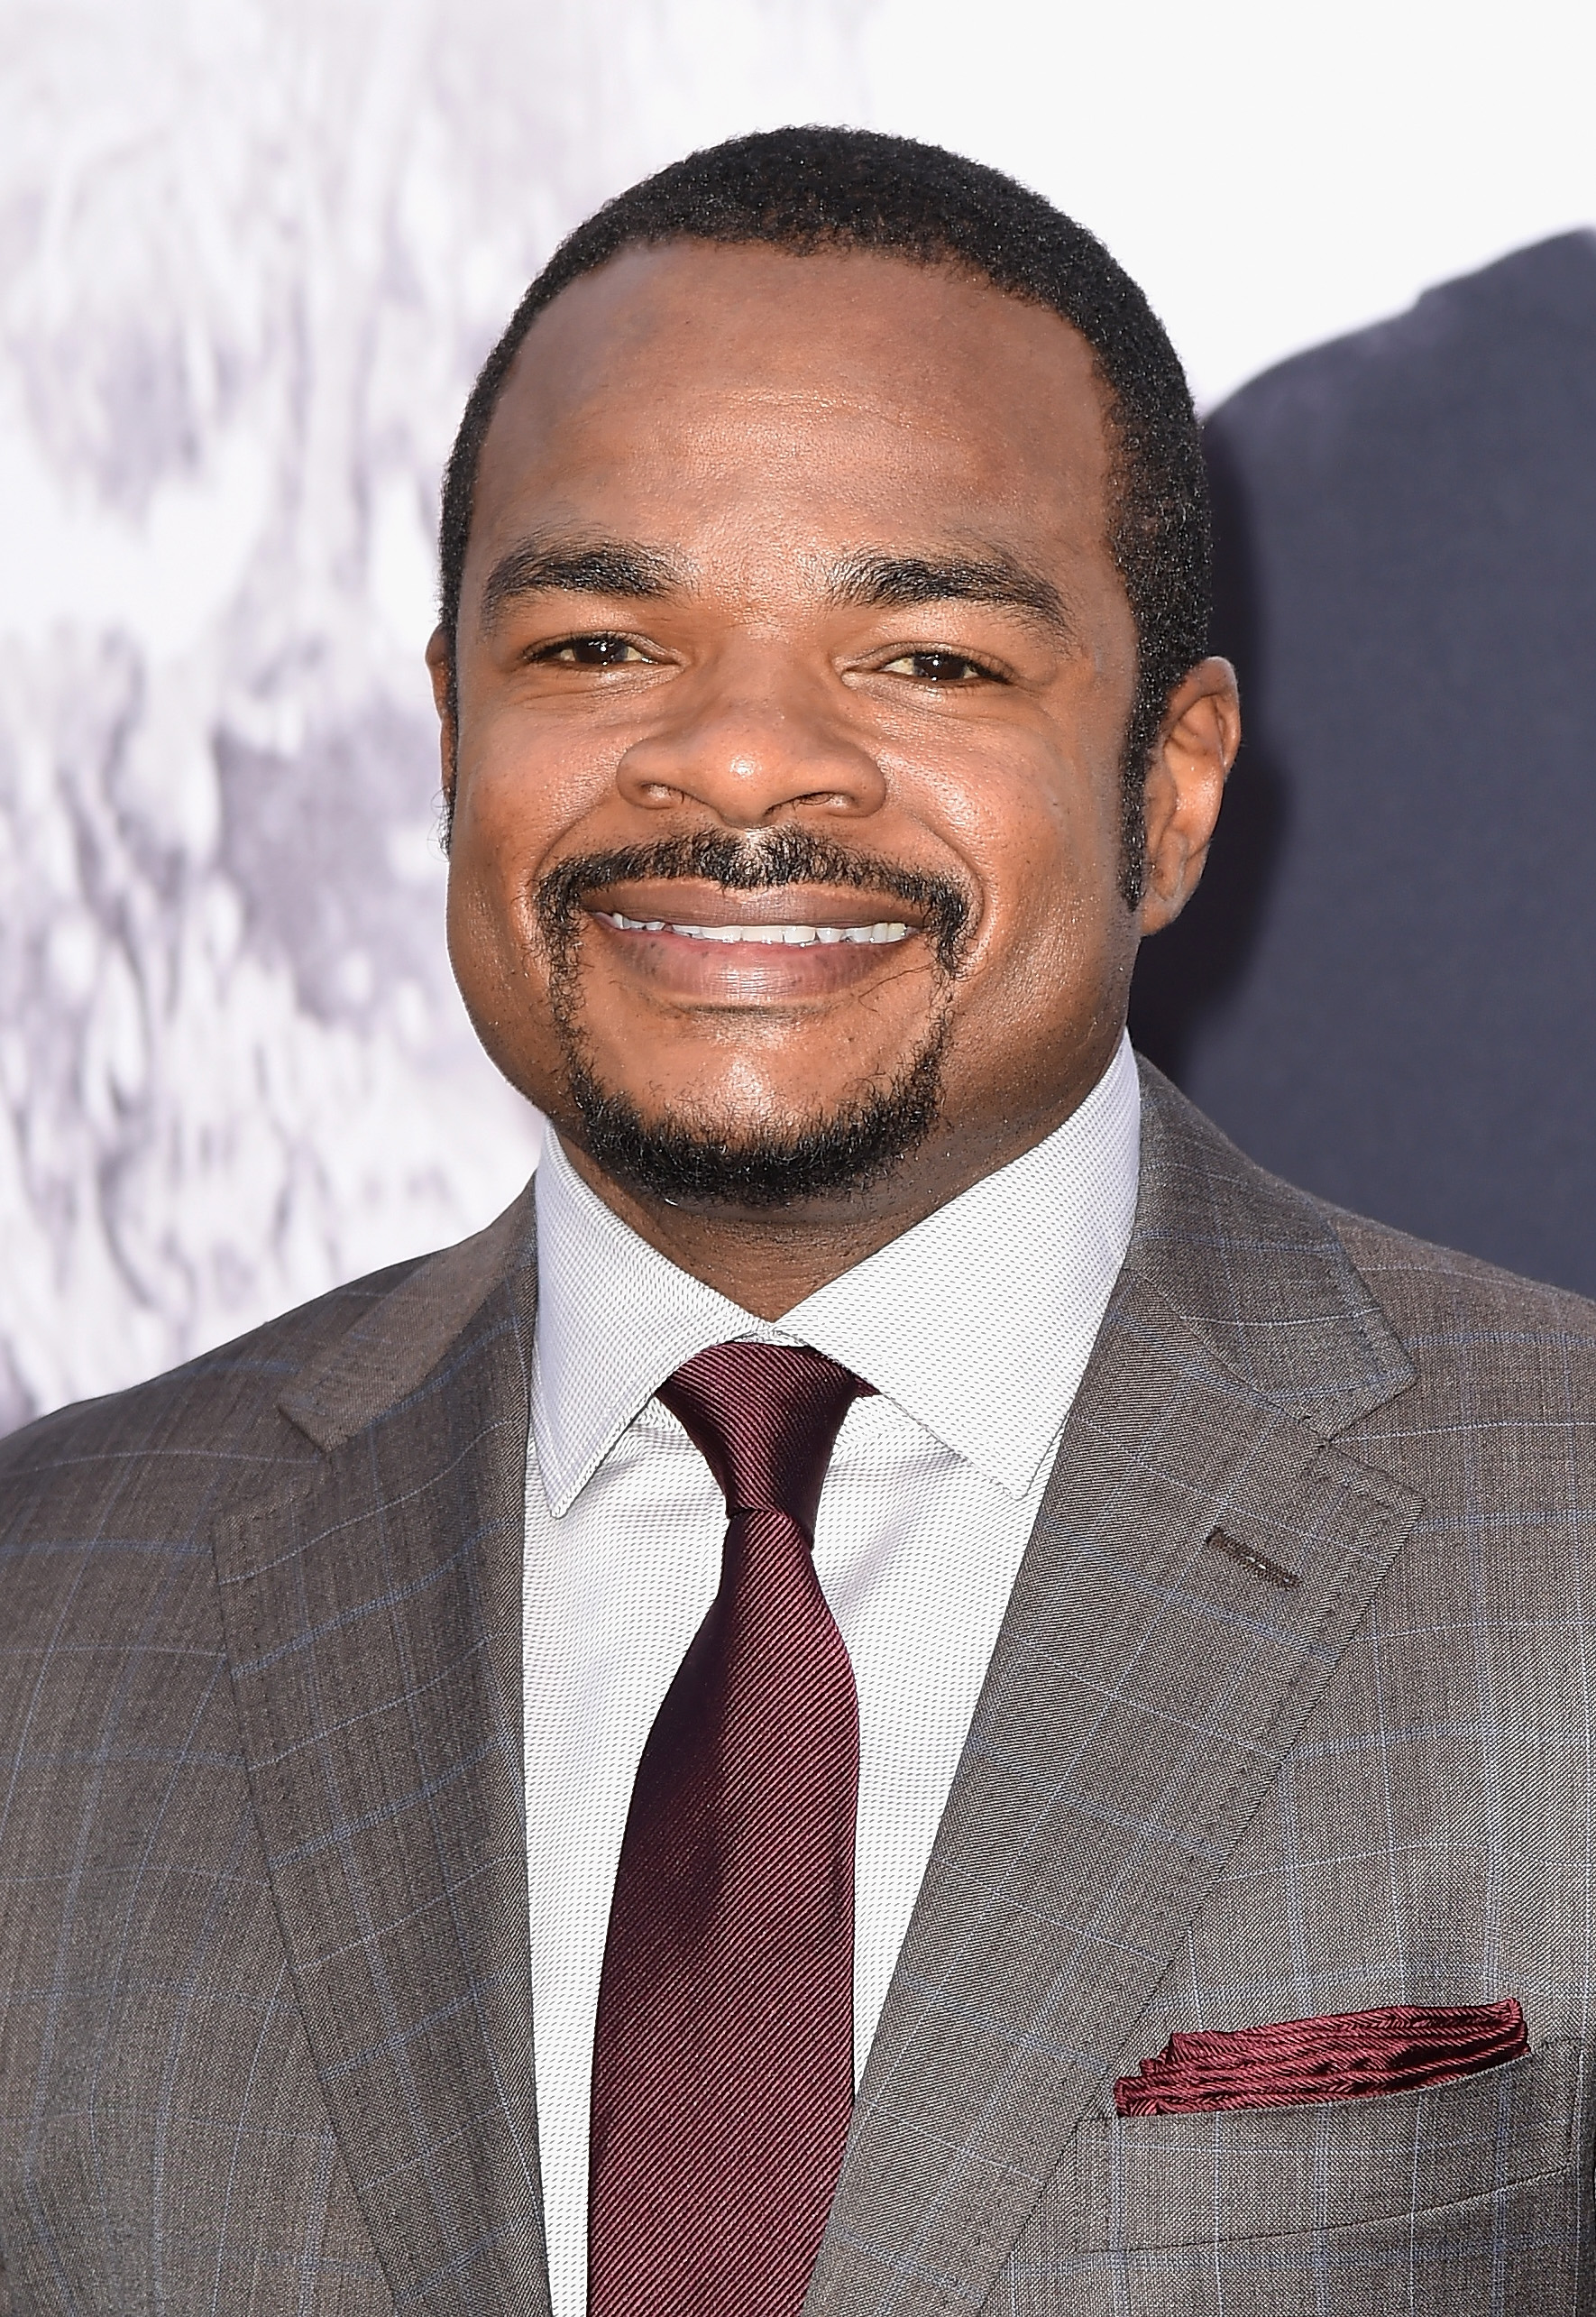 F. Gary Gray at the premiere of  Straight Outta Compton  in Los Angeles on Aug. 10, 2015.